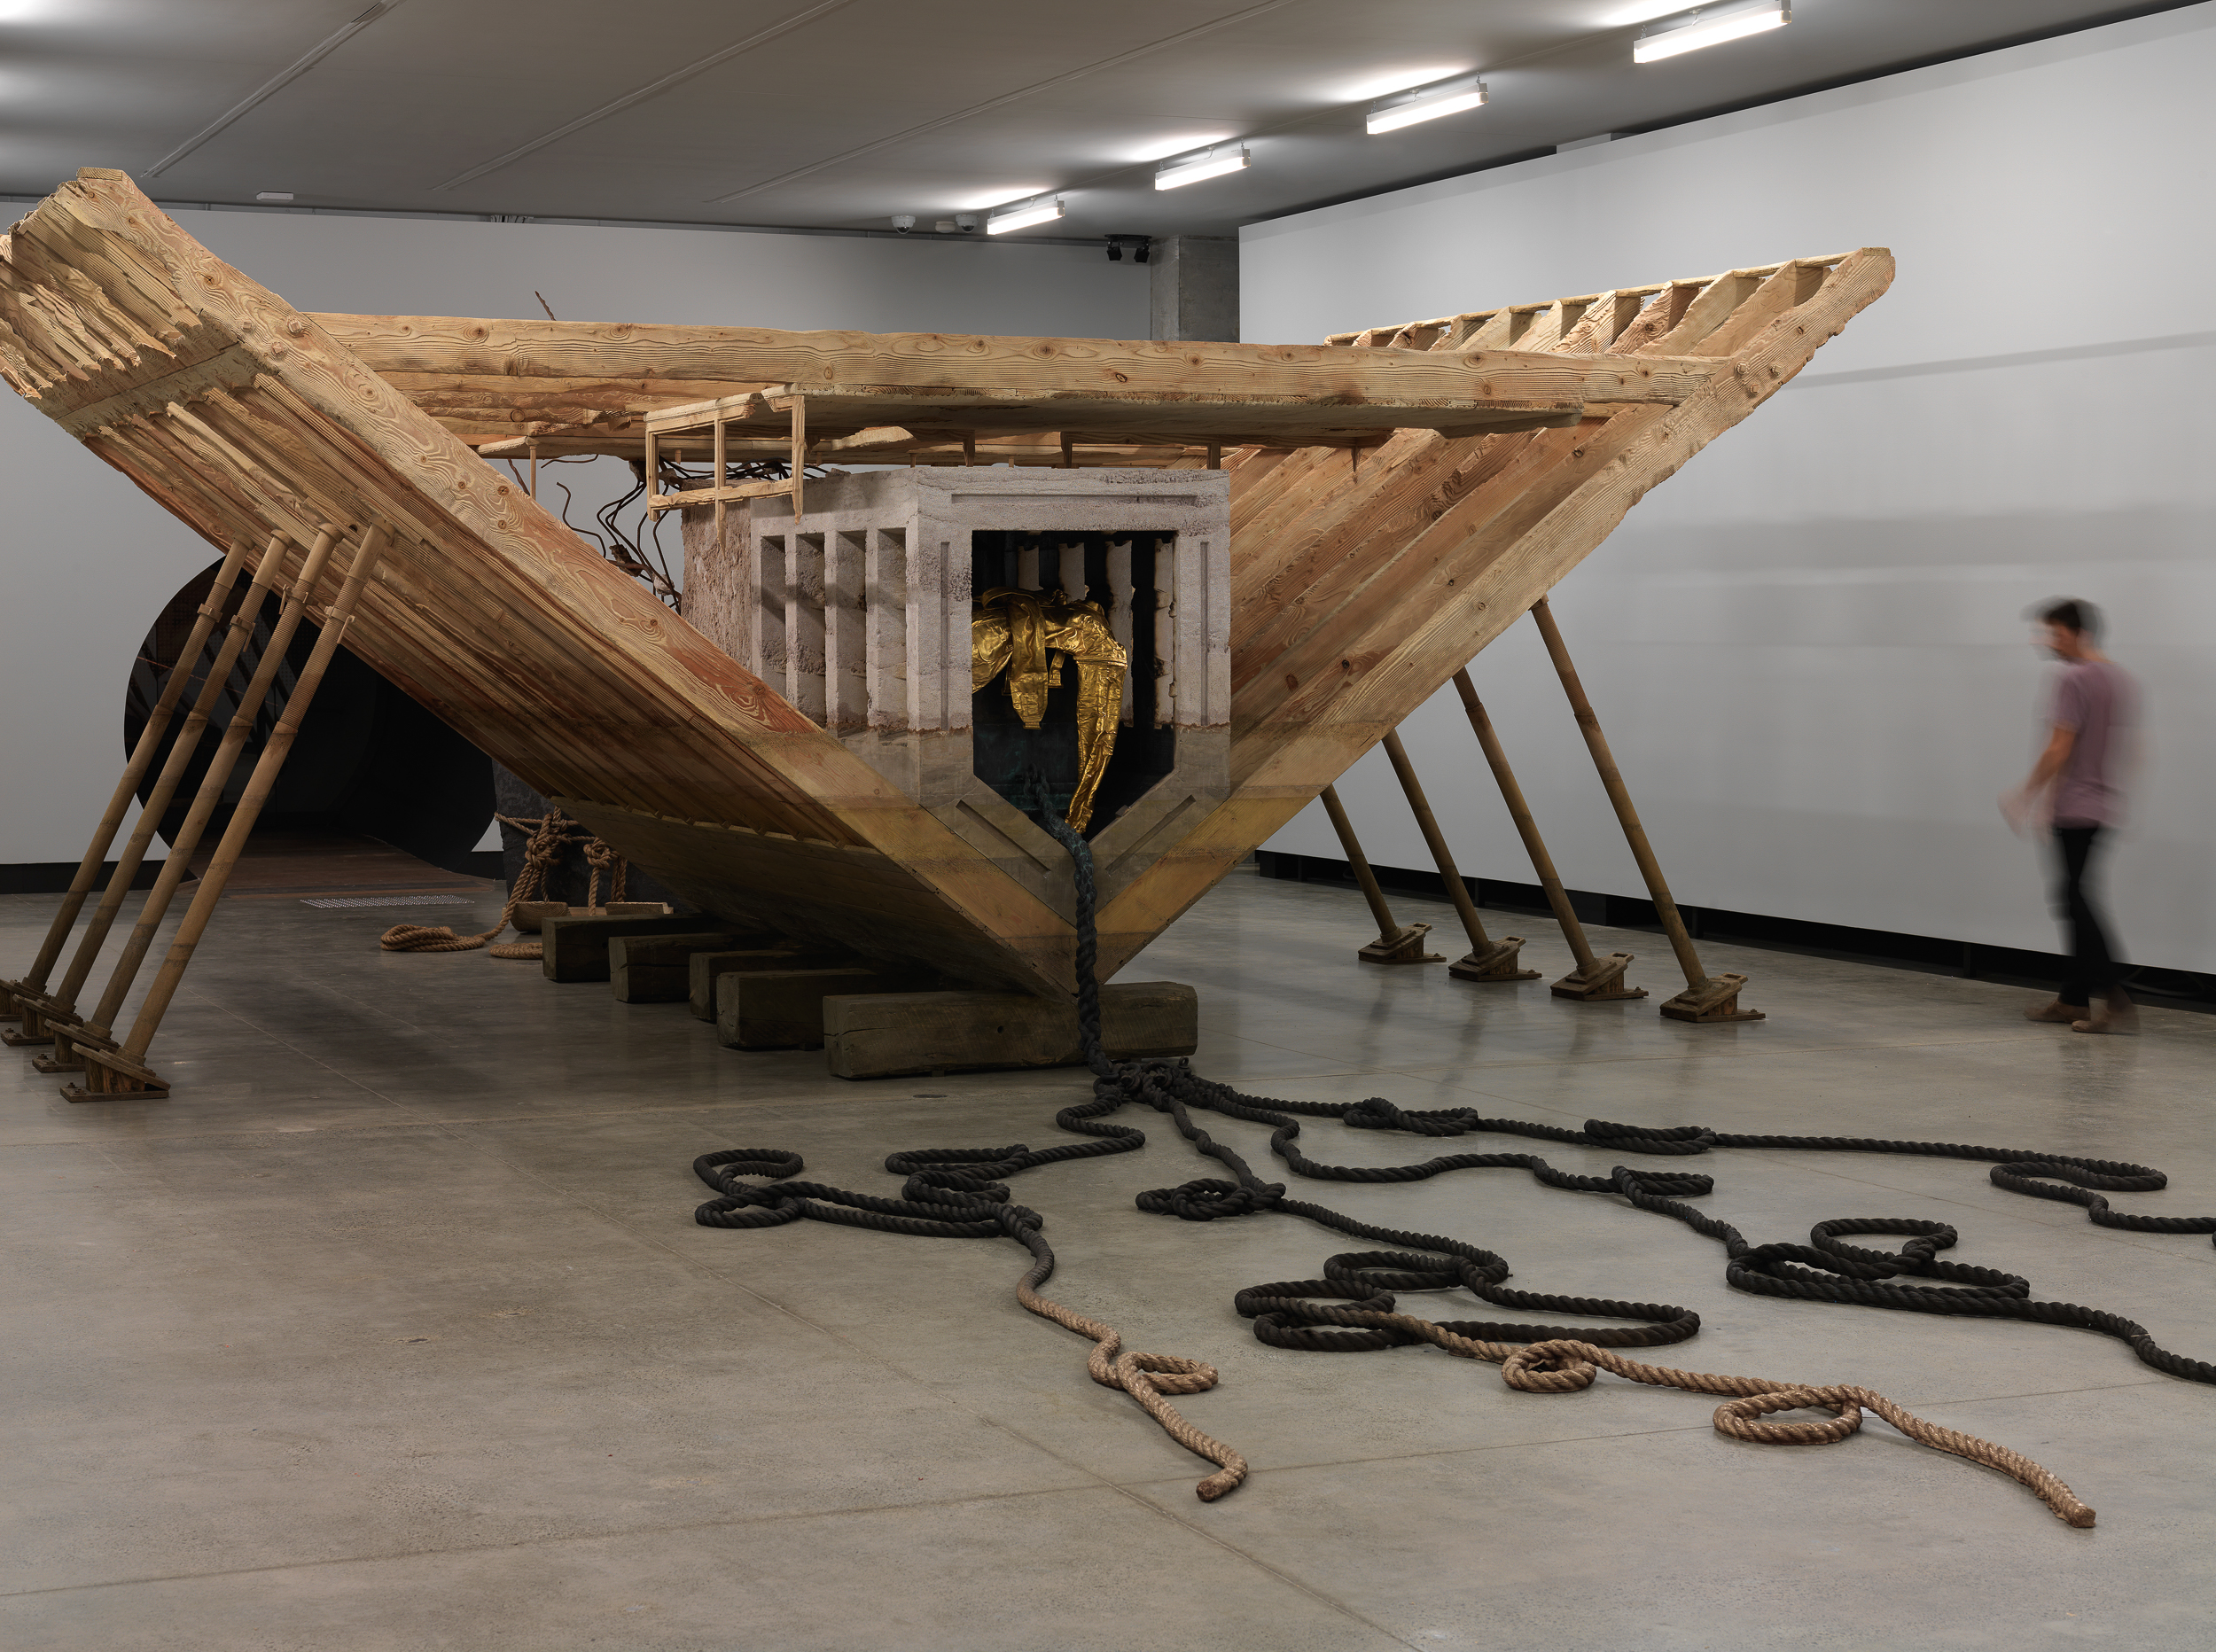 Boat of Ra 2014  Matthew Barney (Born 1967, San Francisco, CA, USA; lives and works in New York) Wood, resin-bonded sand, steel, furniture, cast bronze and gold-plated bronze 335.3 x 1524 x 731.5 cm  Courtesy of the artist and Gladstone Gallery, New York and Brussels